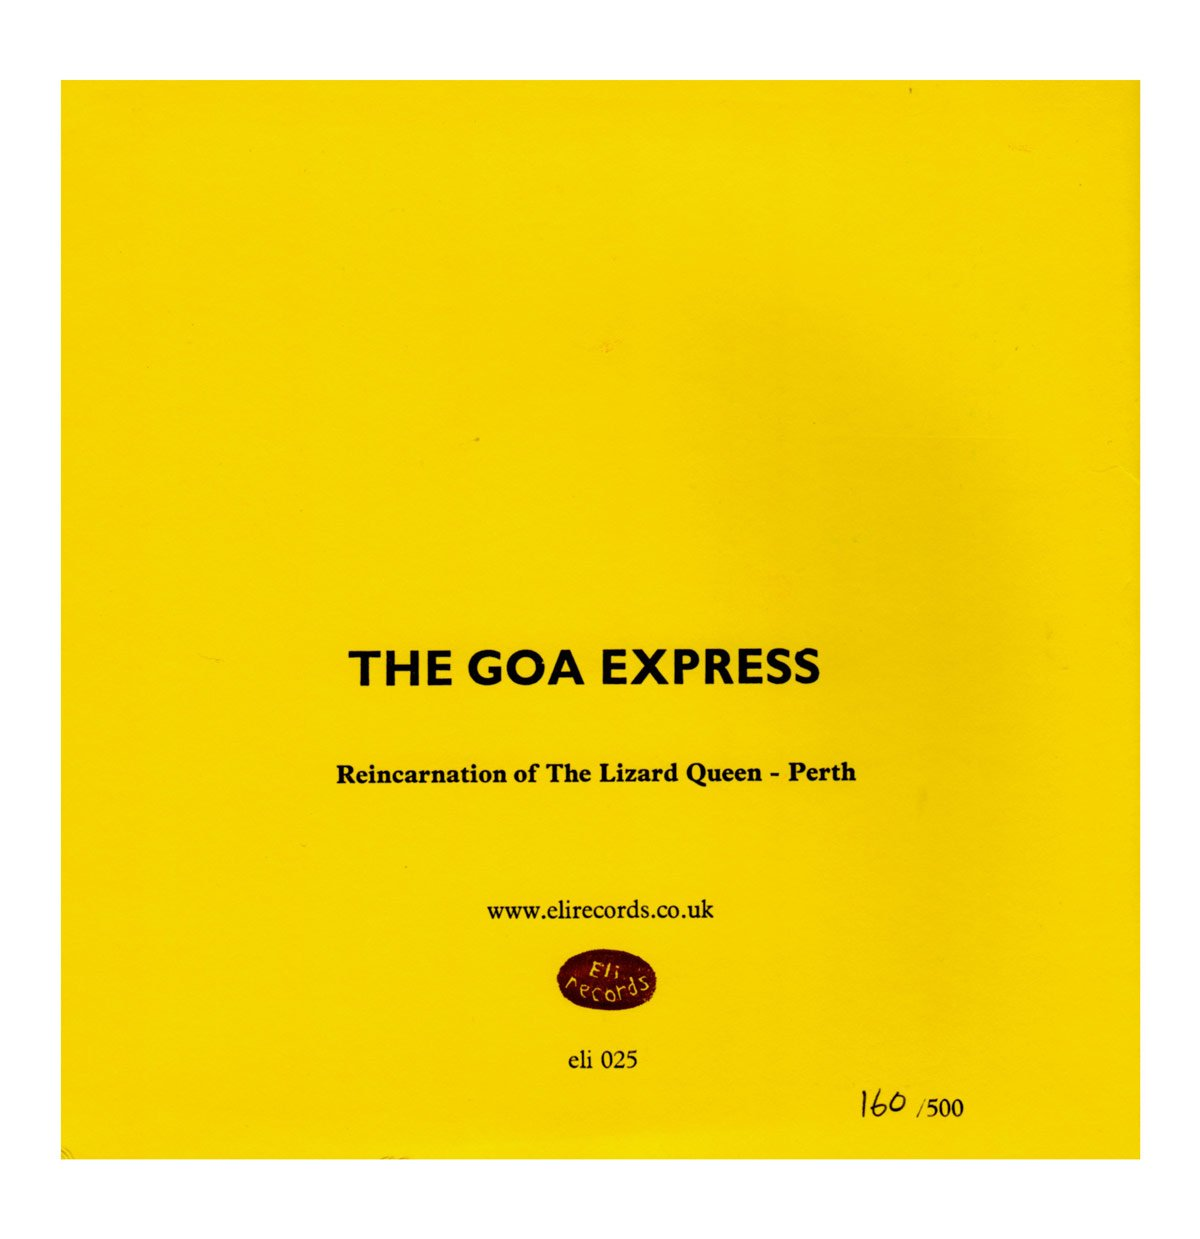 The Goa Express - Reincarnation of The Lizard Queen Reverse Sleeve From Eli Records